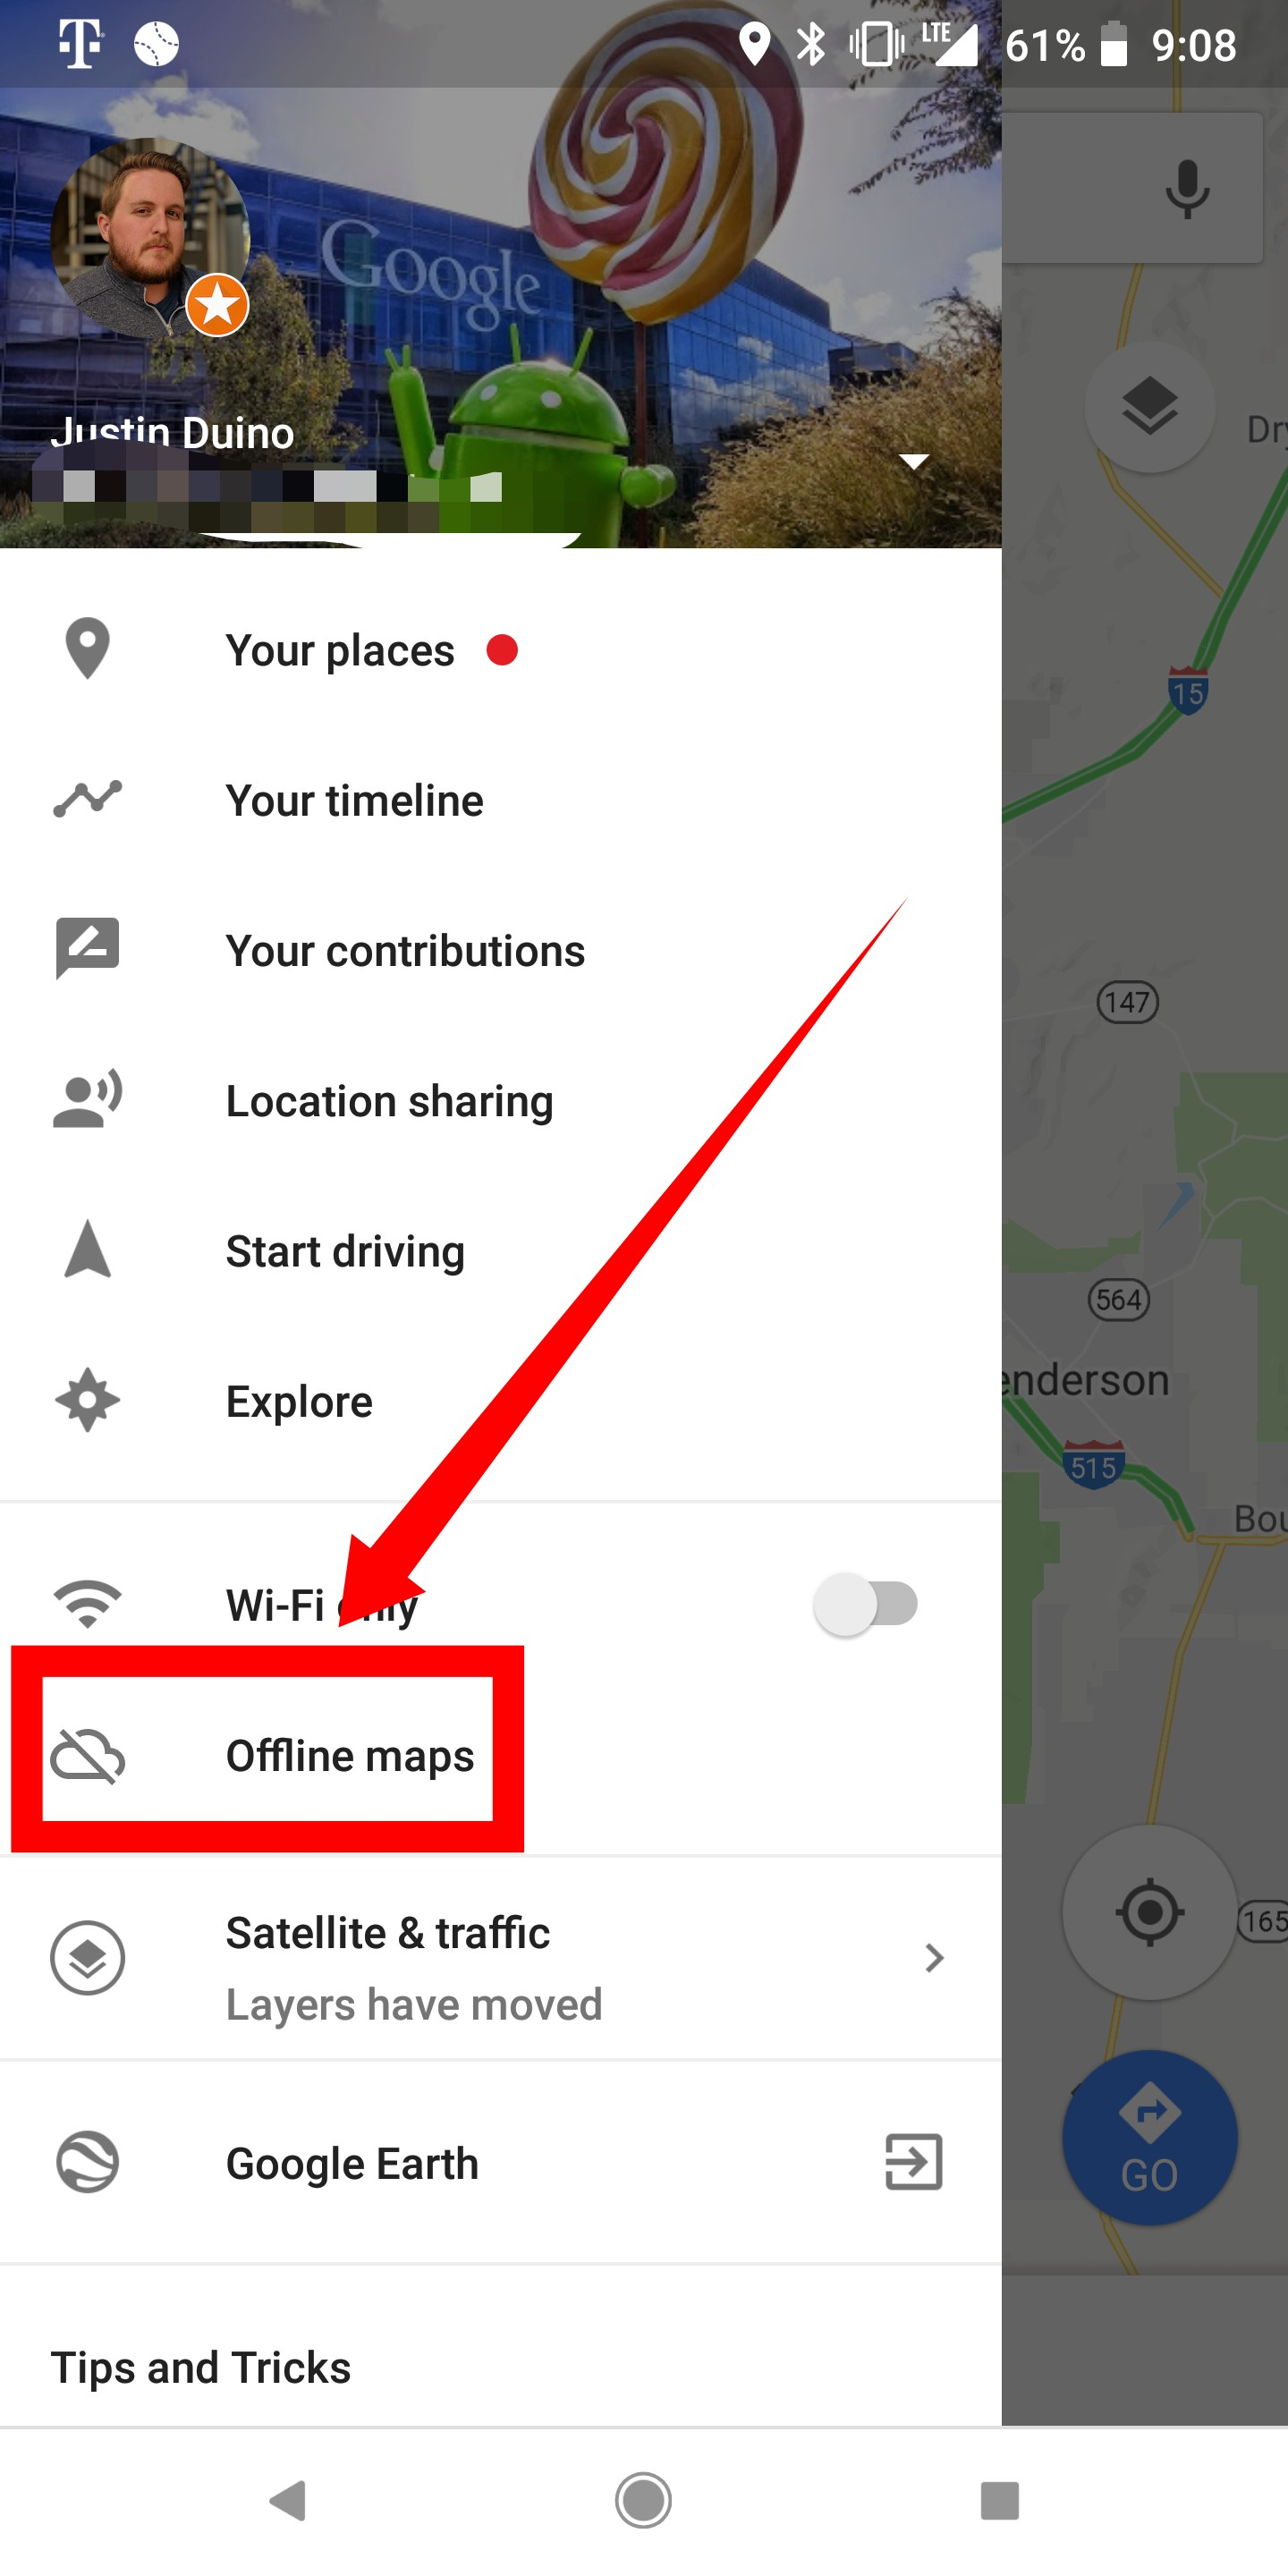 How to use Google Maps offline on Android - 9to5Google Save Route Google Maps Offline on google maps search, google maps 280, google maps print, google maps advertising, google maps web, google maps lv, google maps cuba, google maps android, google maps hidden, google maps desktop, google maps home, google maps 2014, google maps error, google maps windows, google maps mobile, google maps iphone, google maps online, google maps de, google maps lt,